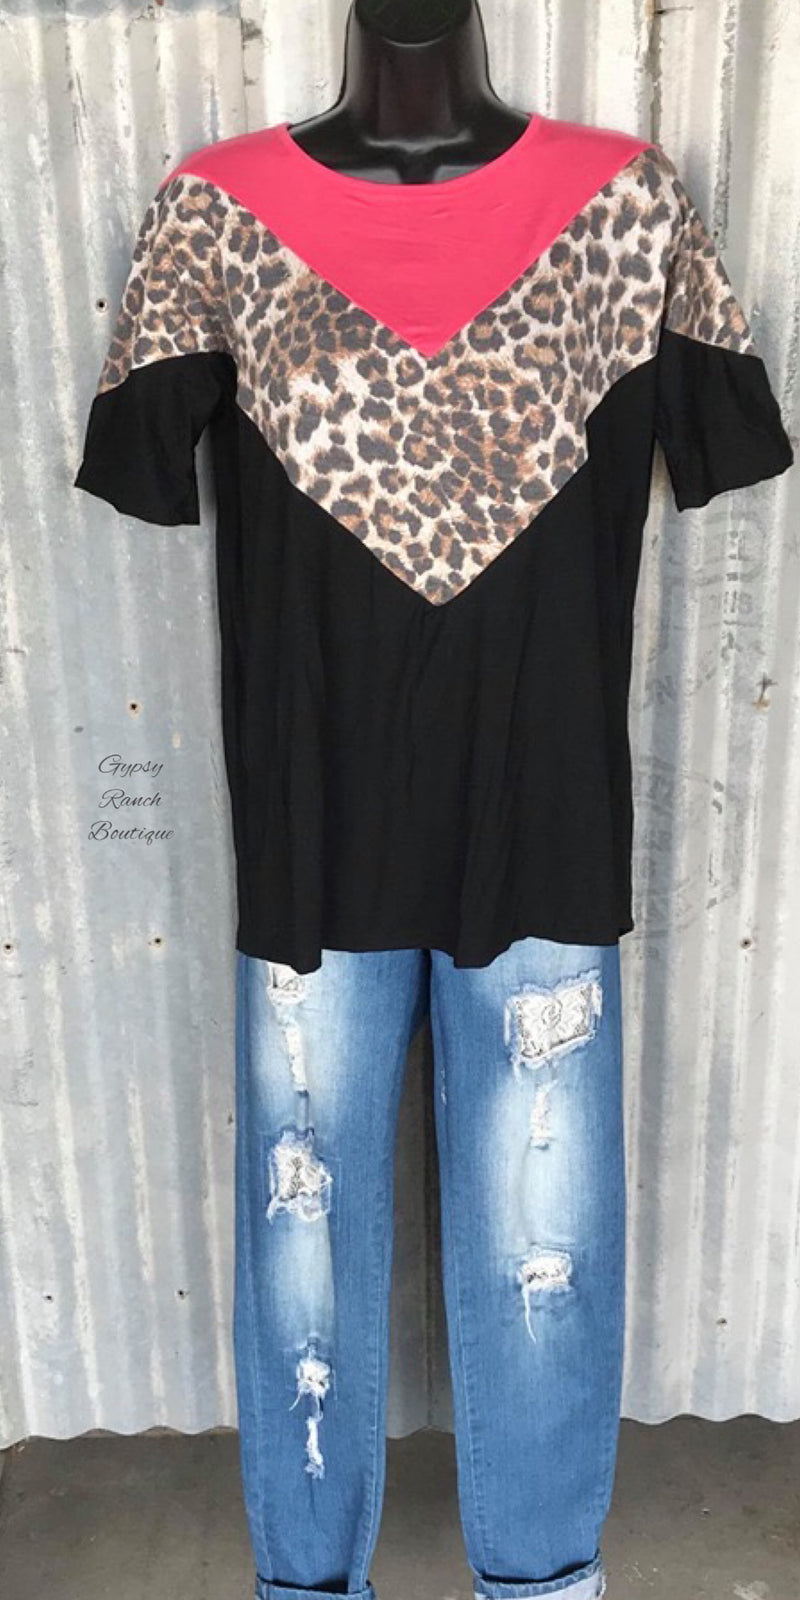 Fayetteville Leopard Top - Also in Plus Size